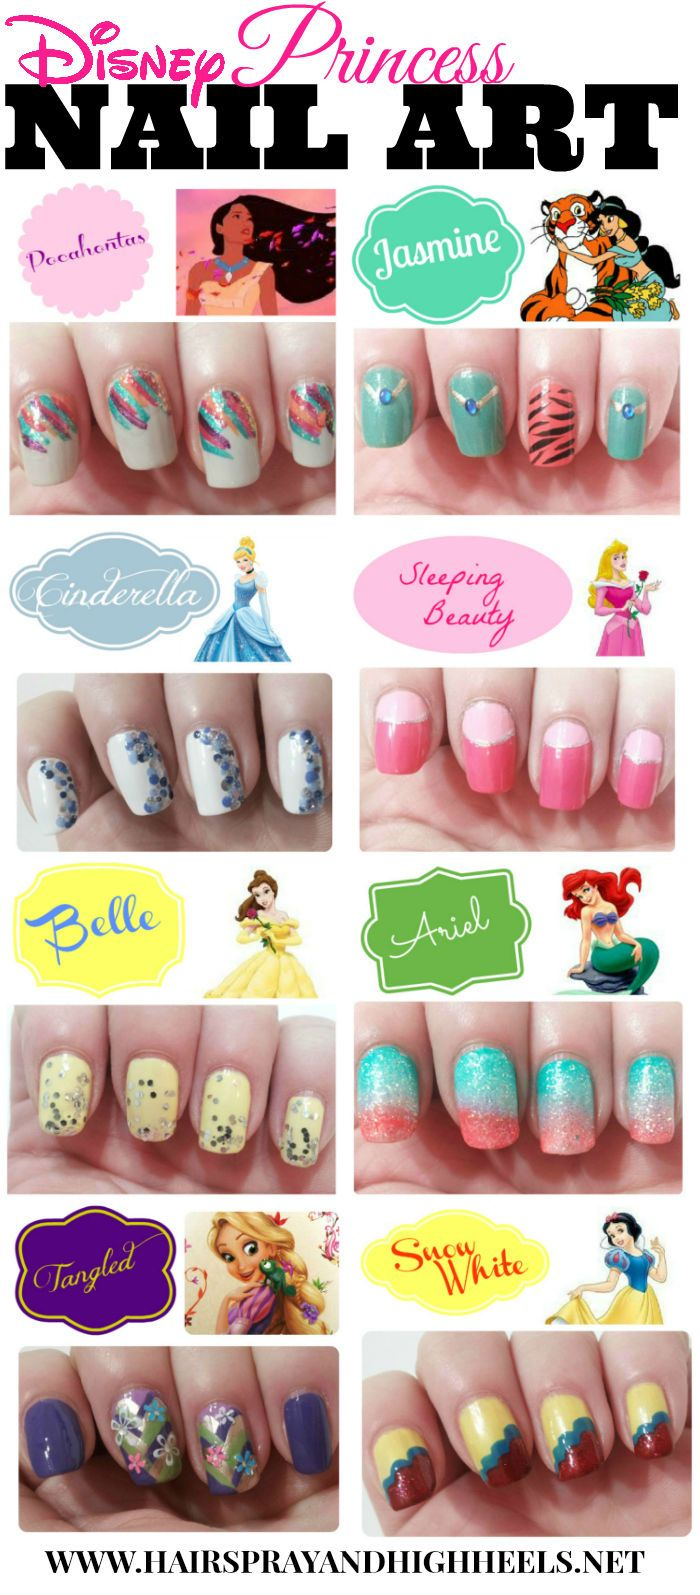 Disney Princess Nail Art Pictures, Photos, and Images for Facebook, Tumblr, Pinterest, and Twitter